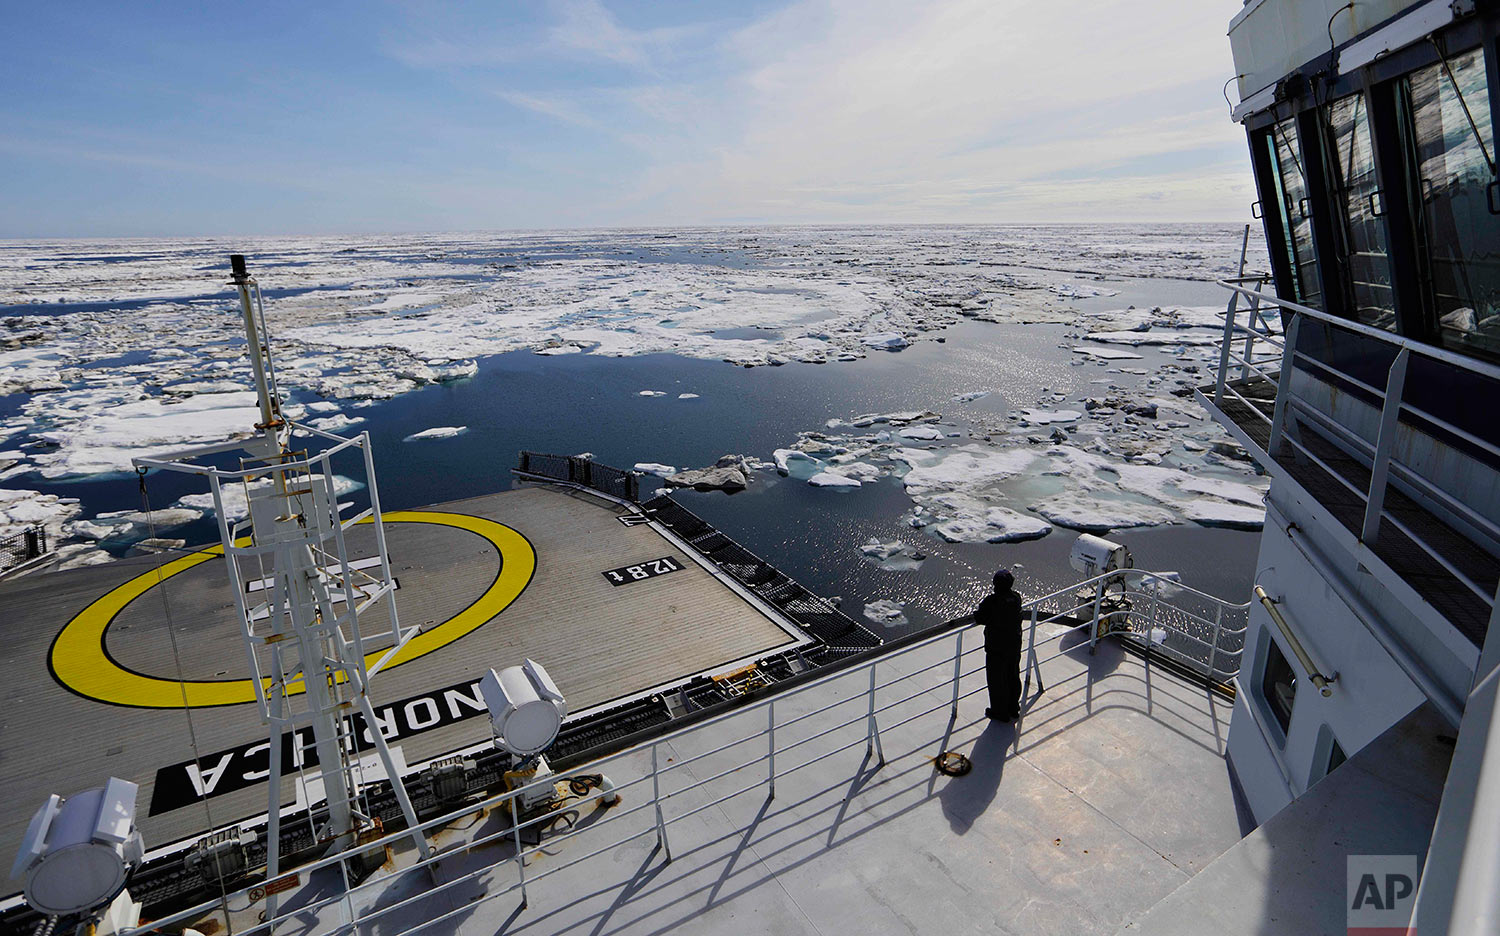 The Finnish icebreaker MSV Nordica sails through ice floating on the Beaufort Sea off the coast of Alaska, Sunday, July 16, 2017, while traversing the Arctic's Northwest Passage, where global warming is melting sea ice and glaciers at an historic rate, altering and opening up the Arctic as never before. (AP Photo/David Goldman)